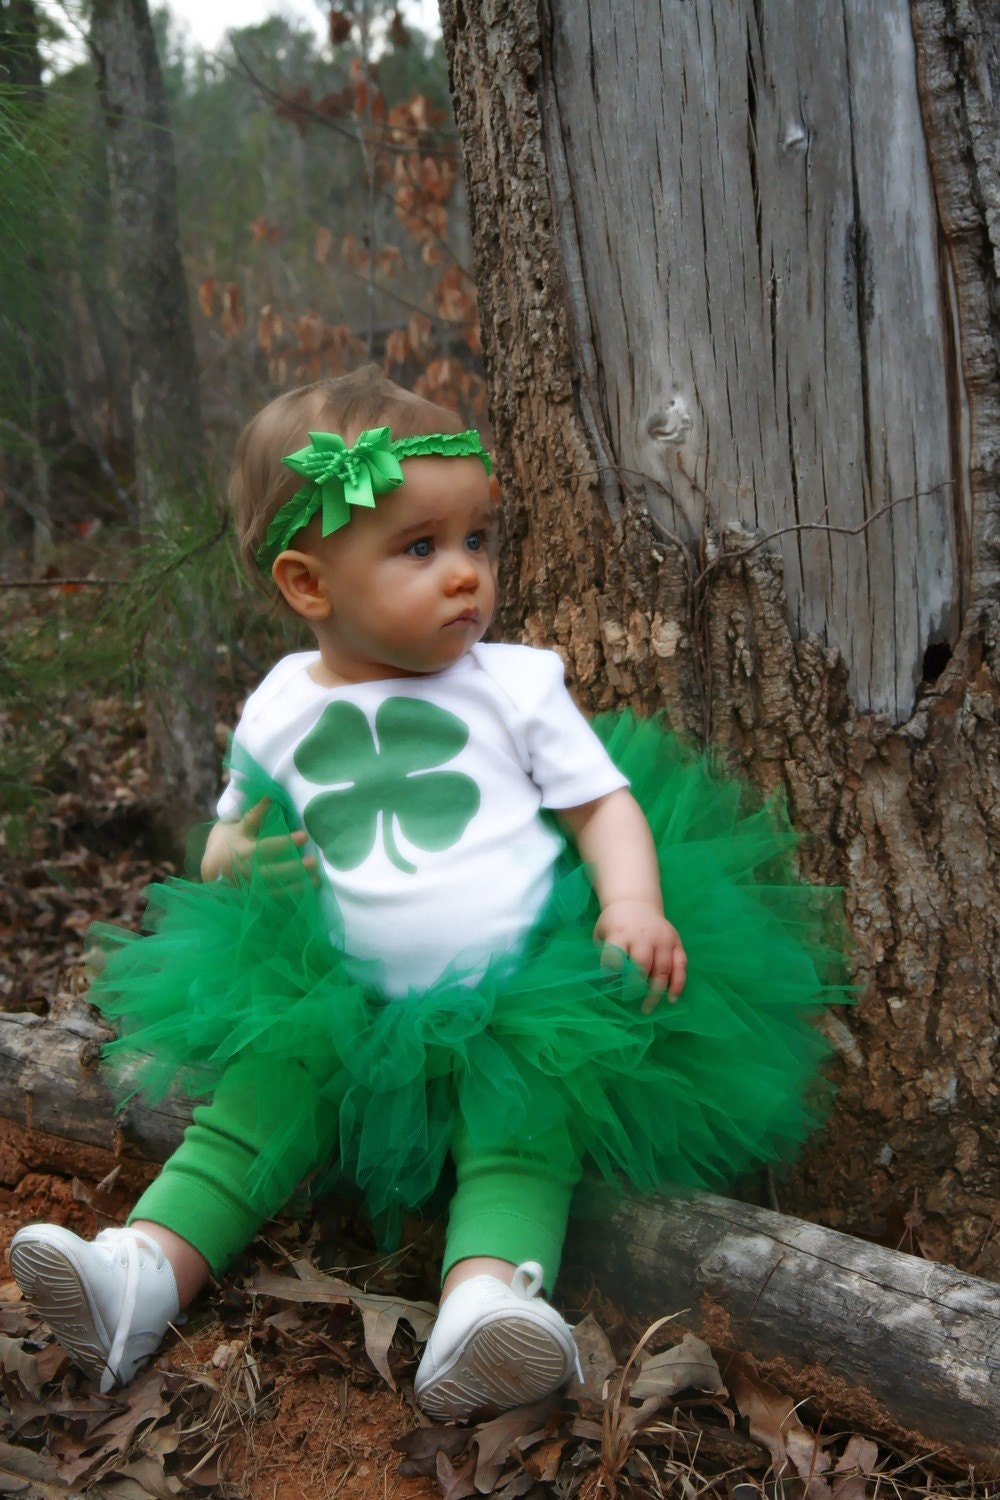 green st patrick's tutu outfit baby toddler for your